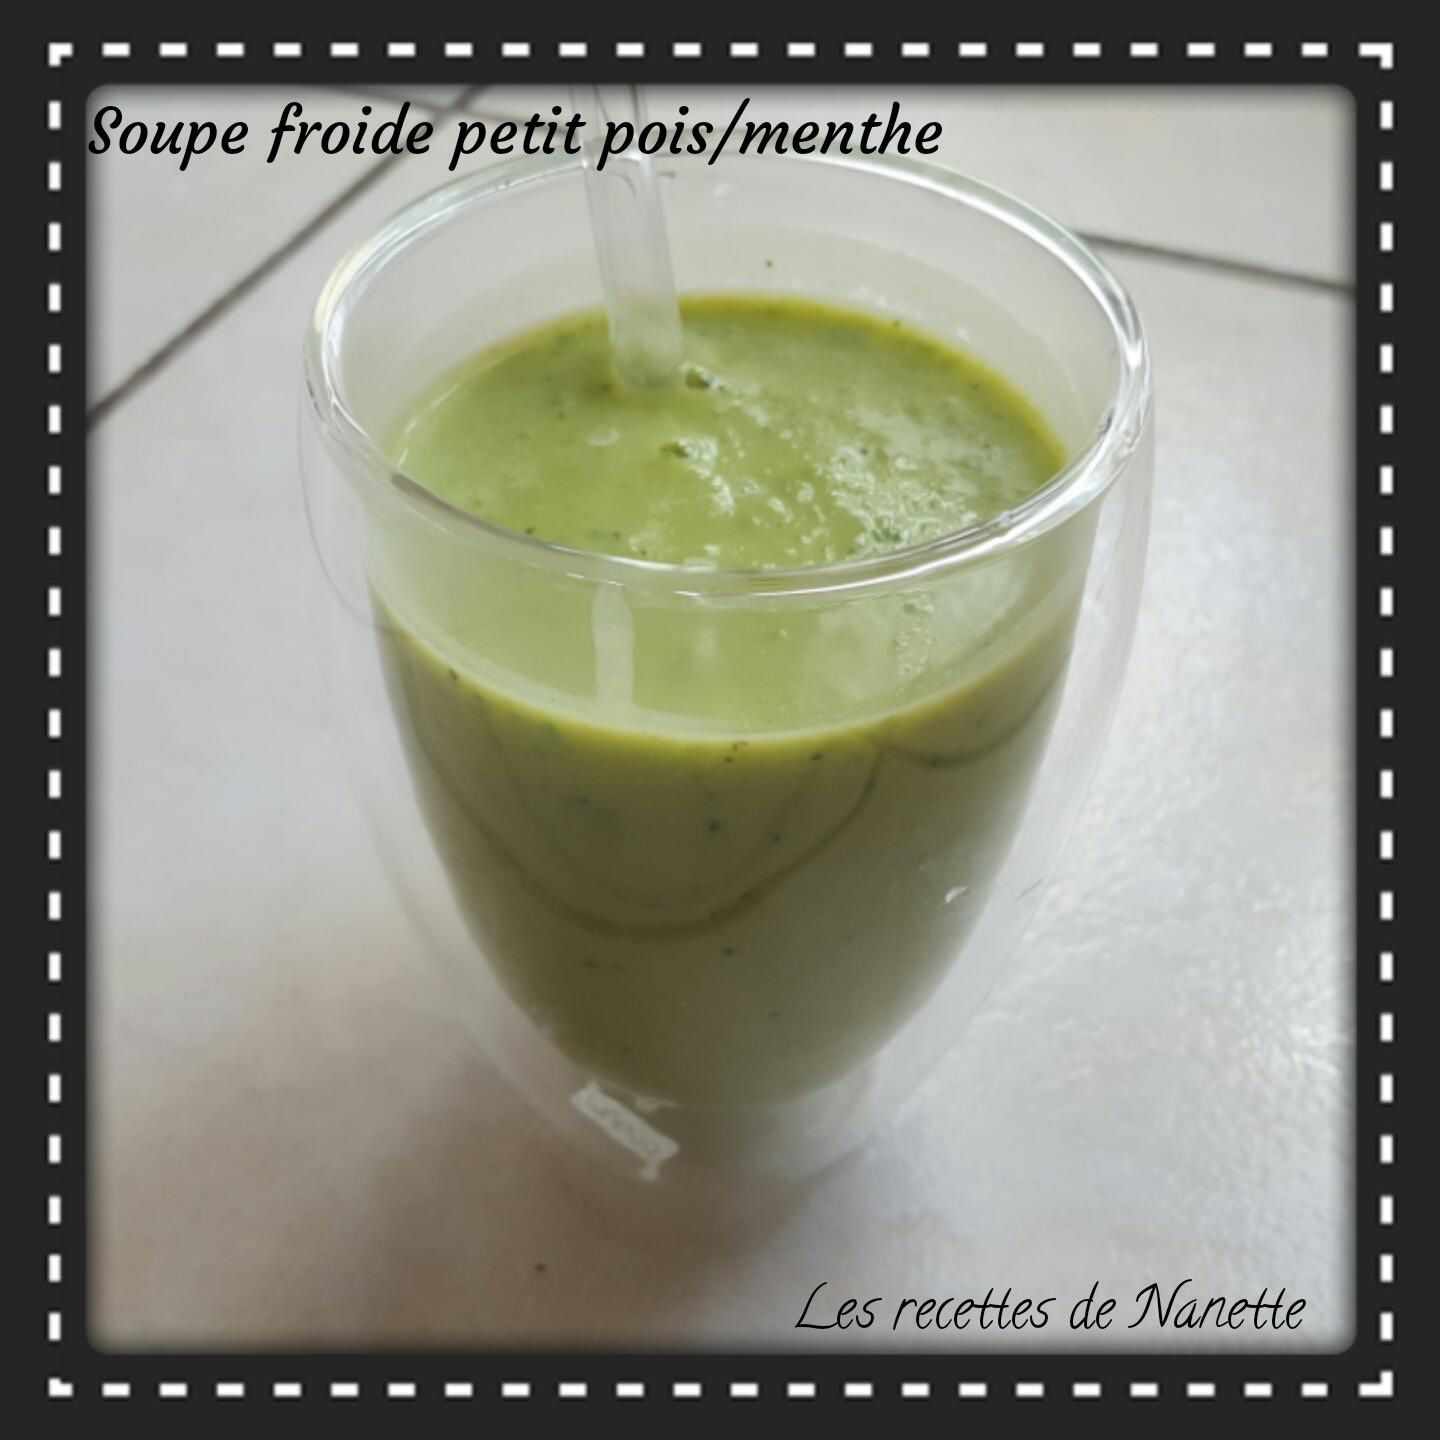 Soupe froide petits pois/menthe